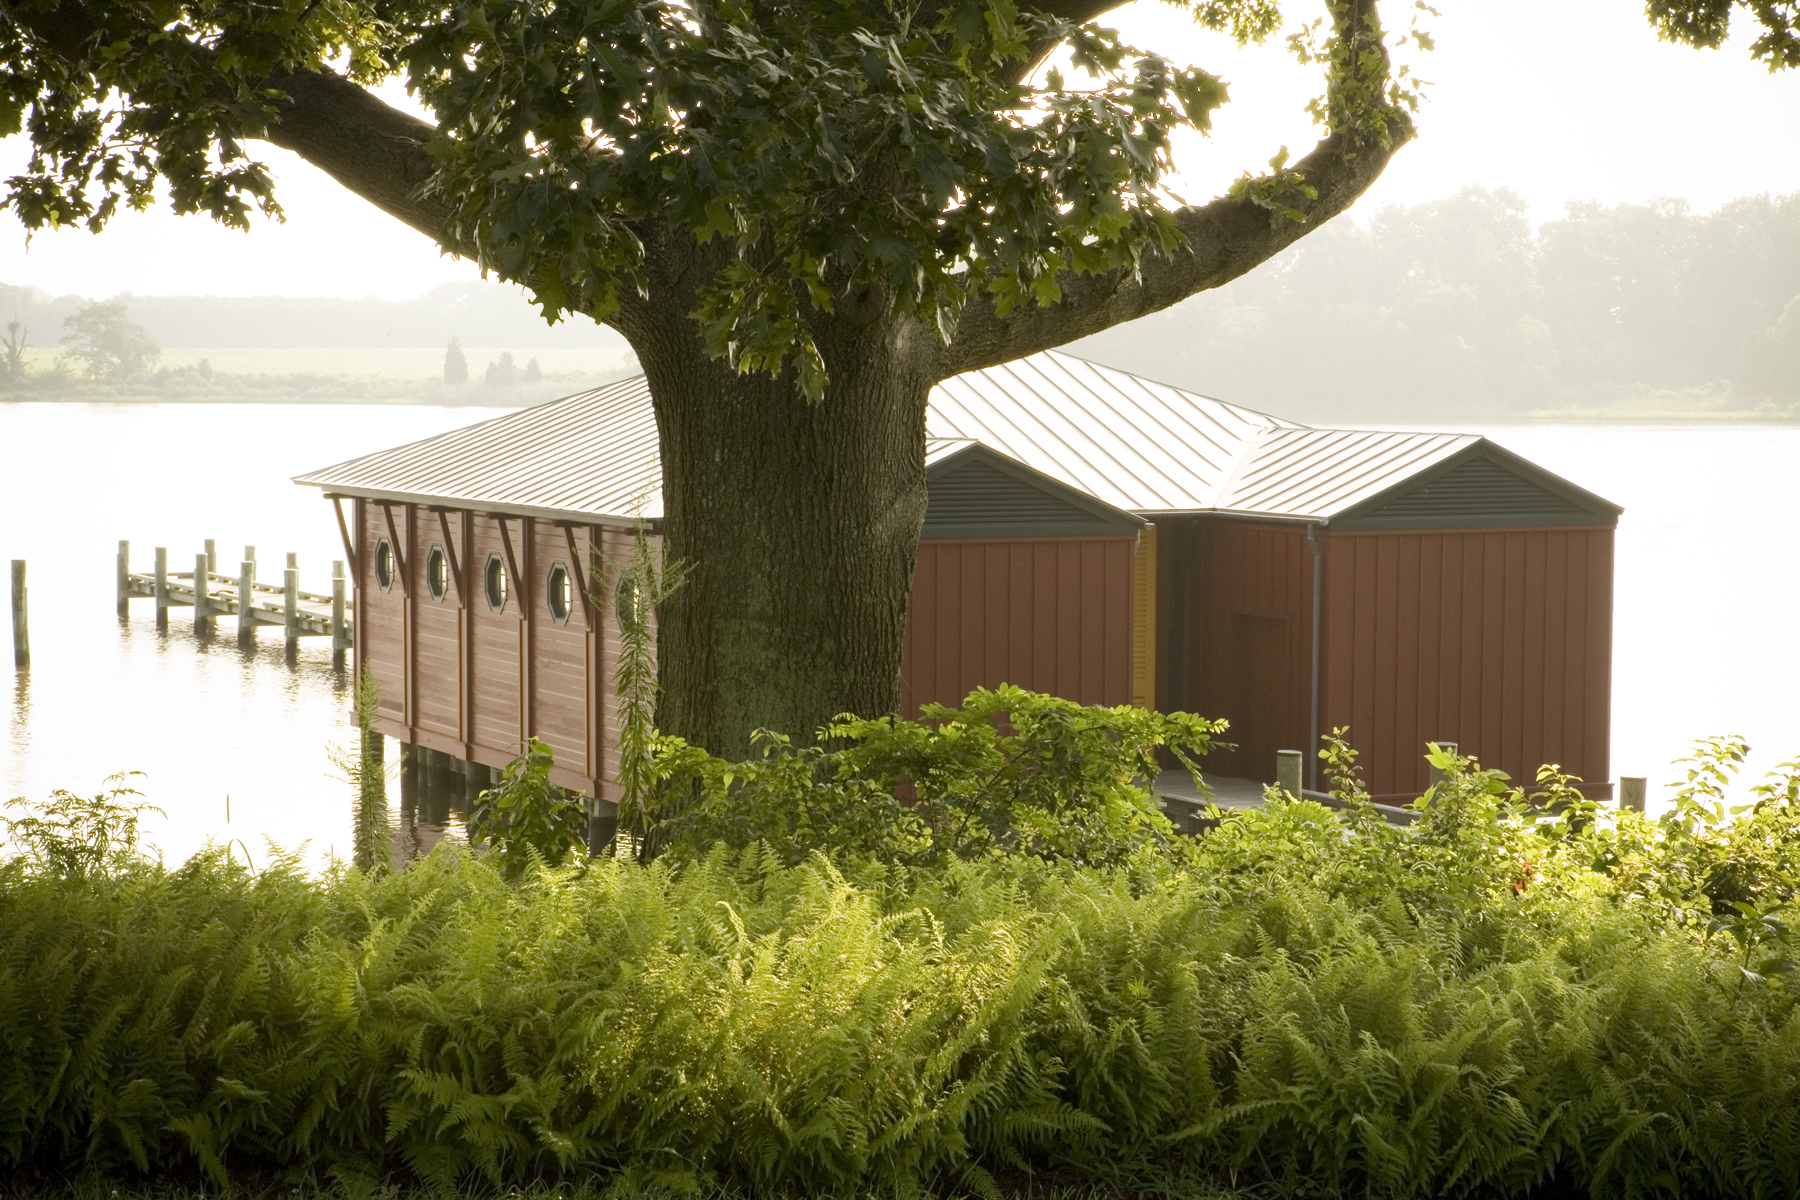 Project Location: Wye Island, Maryland  Completion: 2004  Project Architect: Neumann Lewis Buchanan  Photos By: Victoria Cooper  Awards: Philip Trammell Shutze Award, Institute of Classical Architecture, 2010